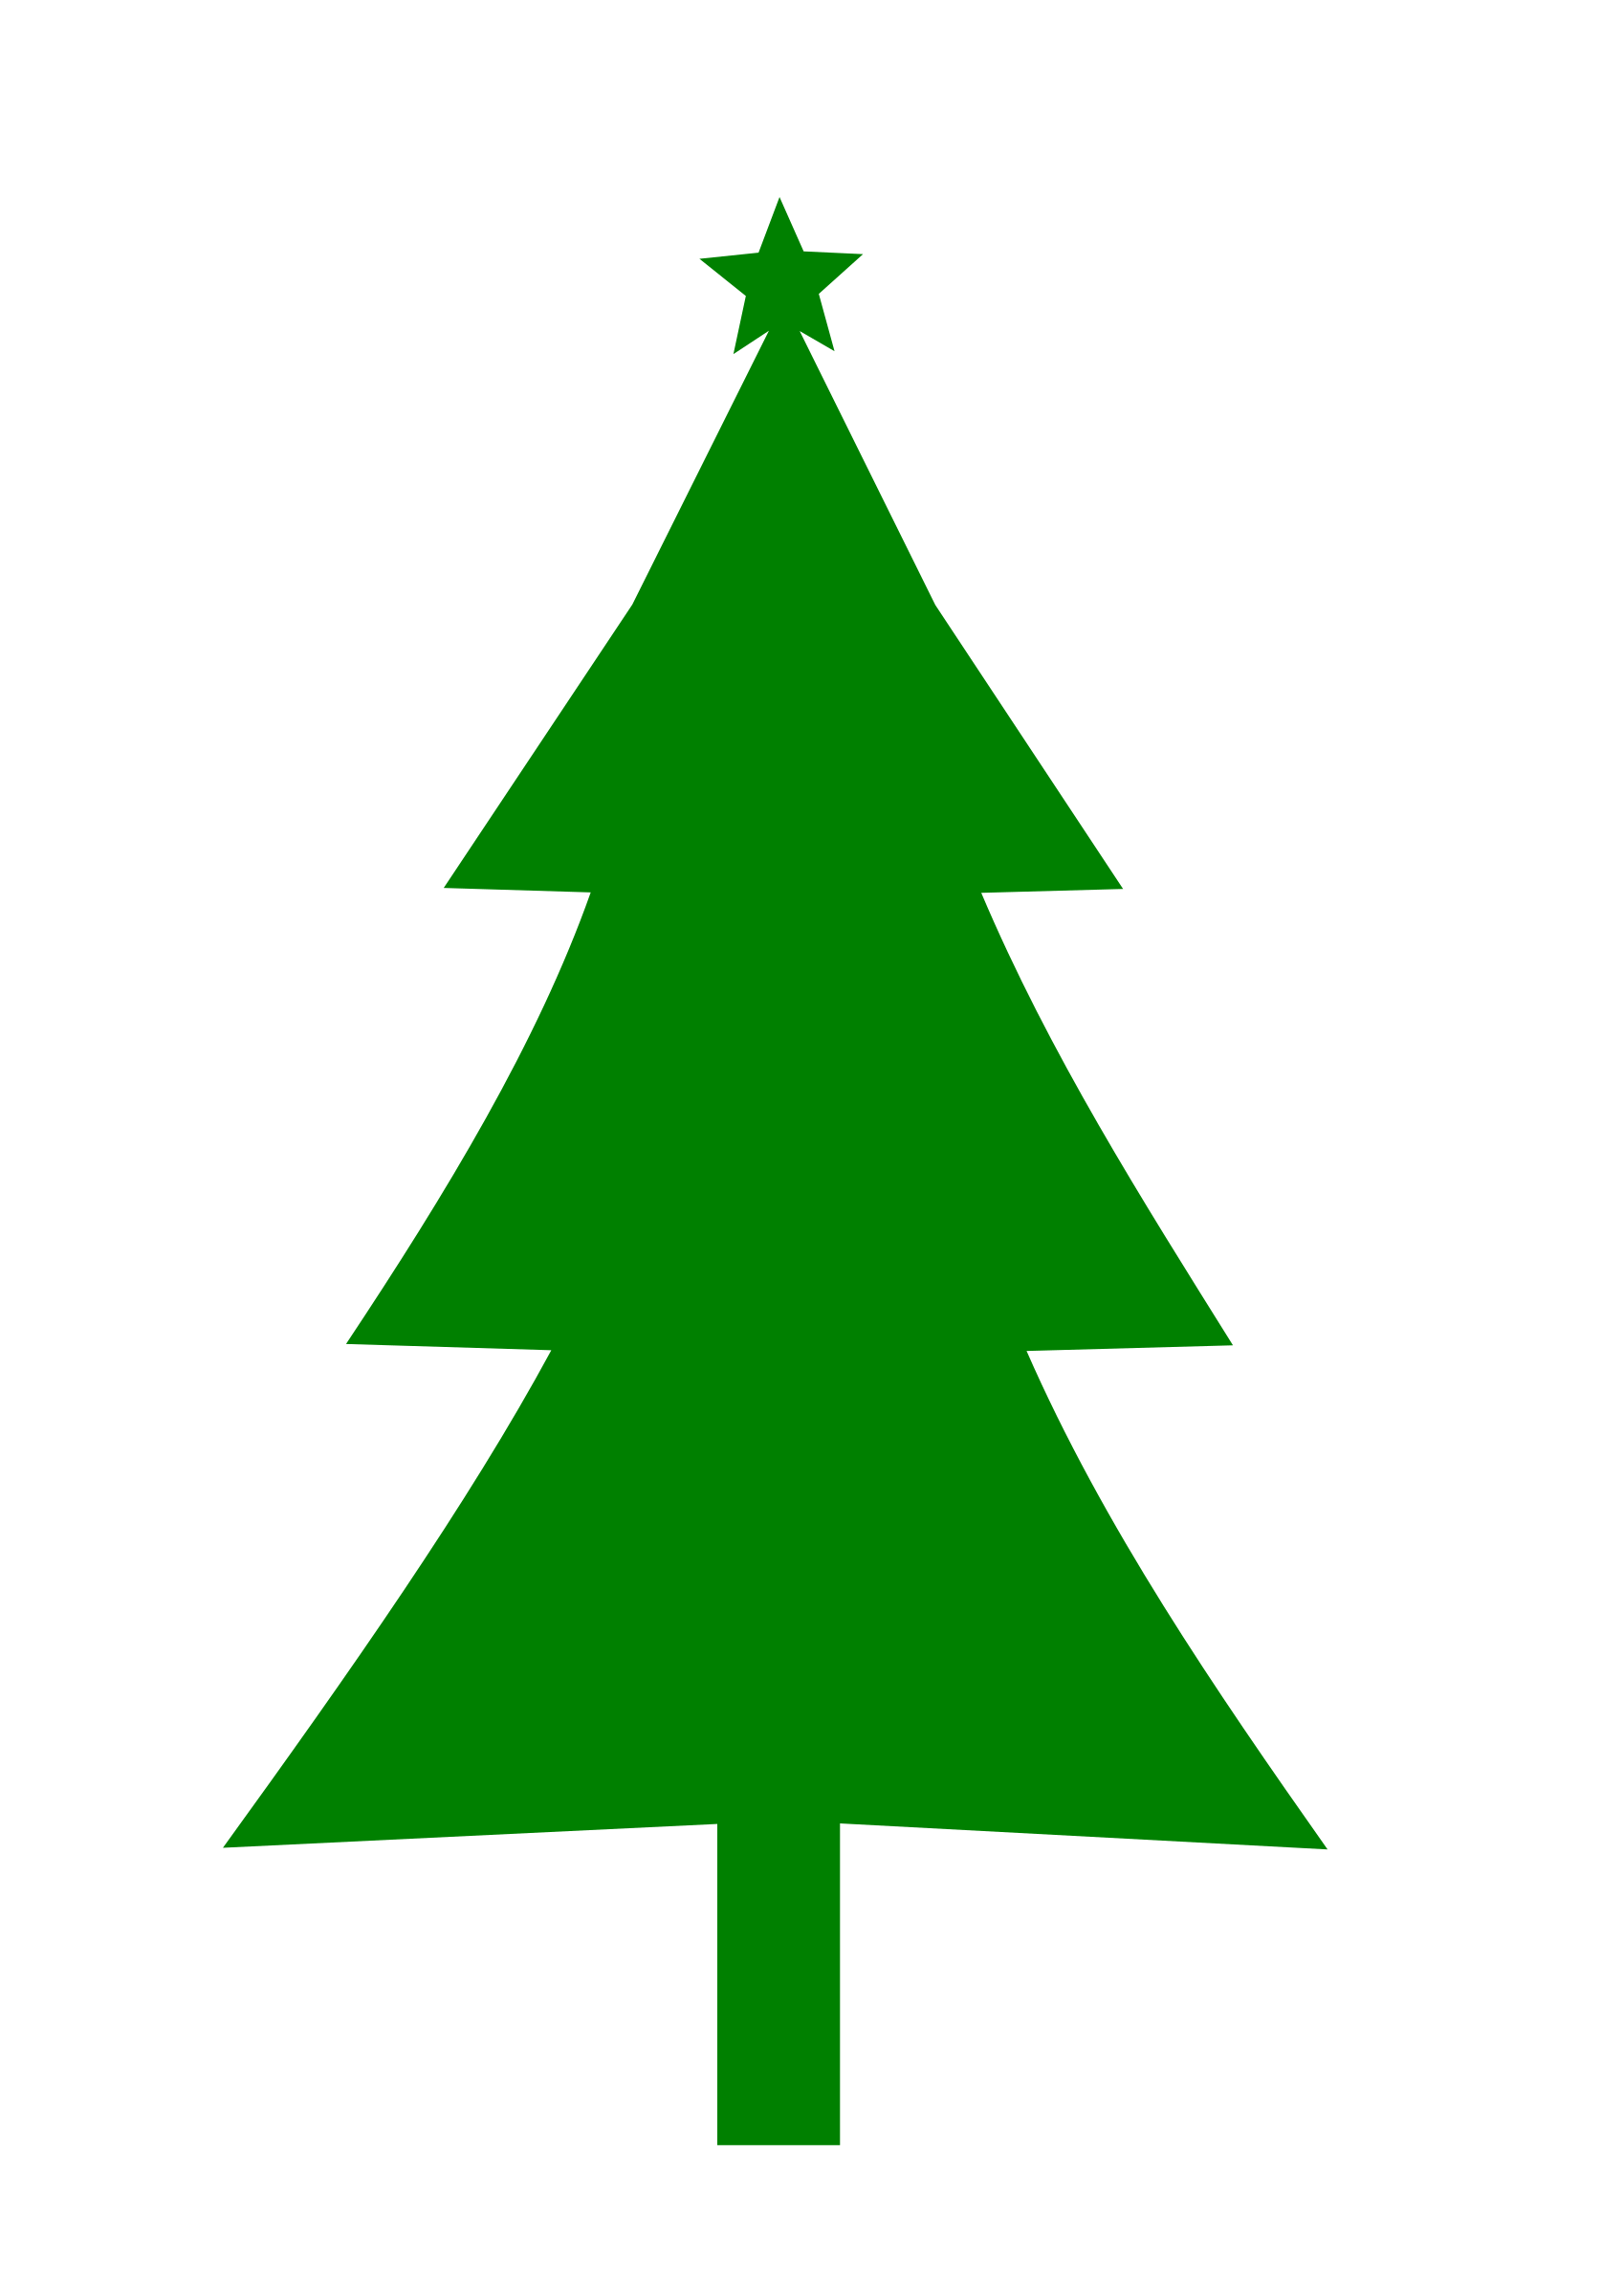 Clipart evergreen tree silhouette clipart freeuse stock Christmas Trees Silhouette at GetDrawings.com | Free for personal ... clipart freeuse stock